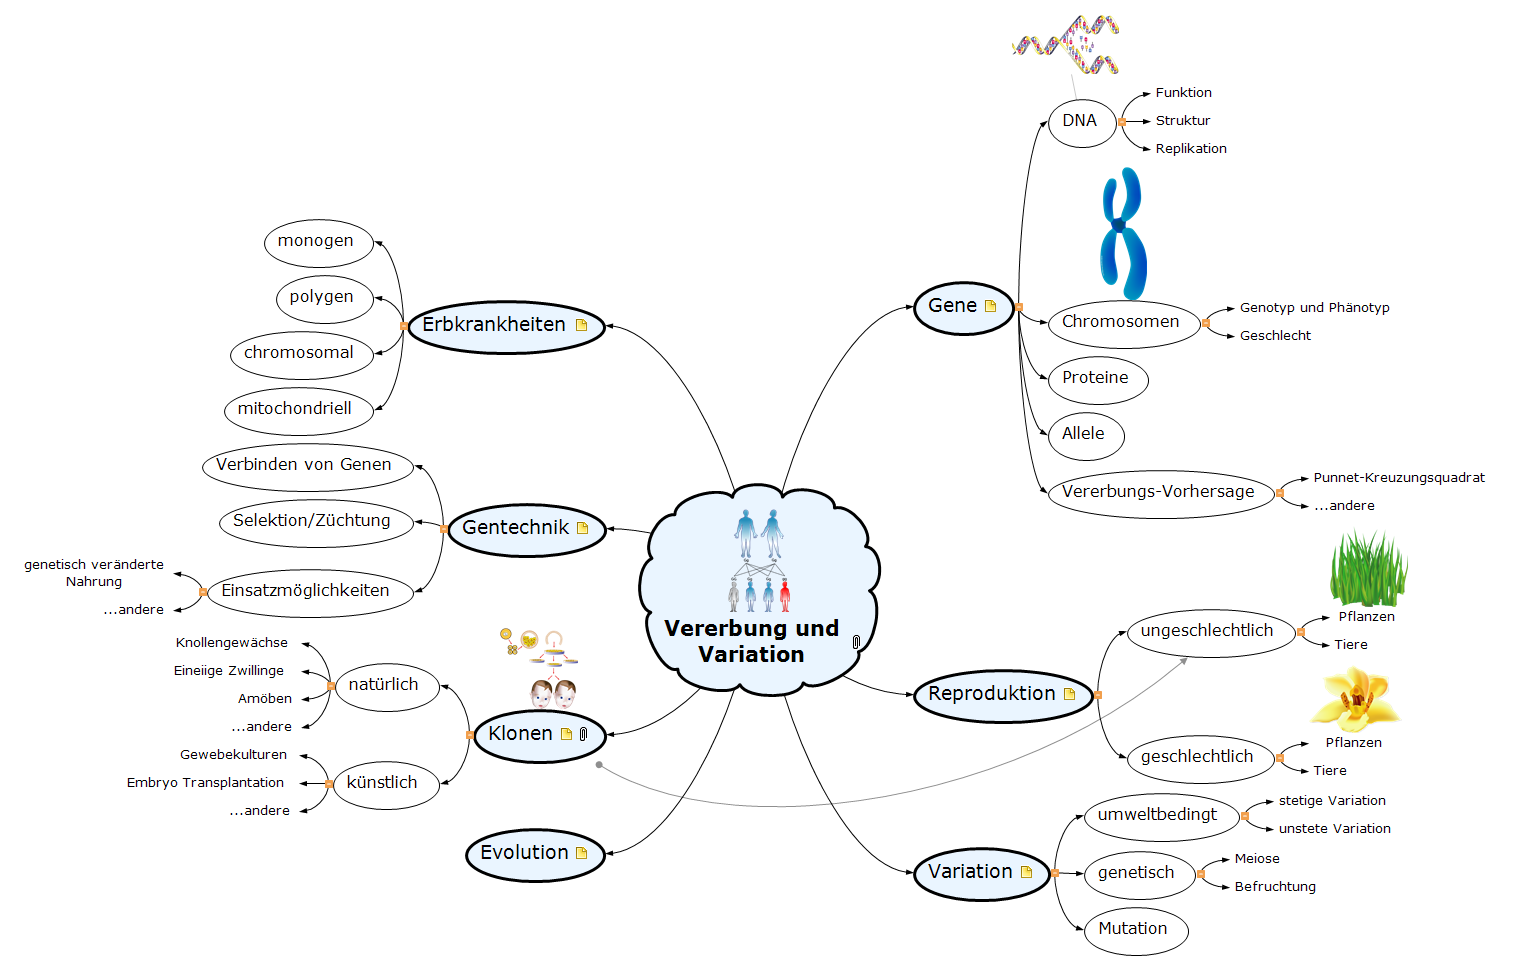 Vererbung und Variation Mind Map